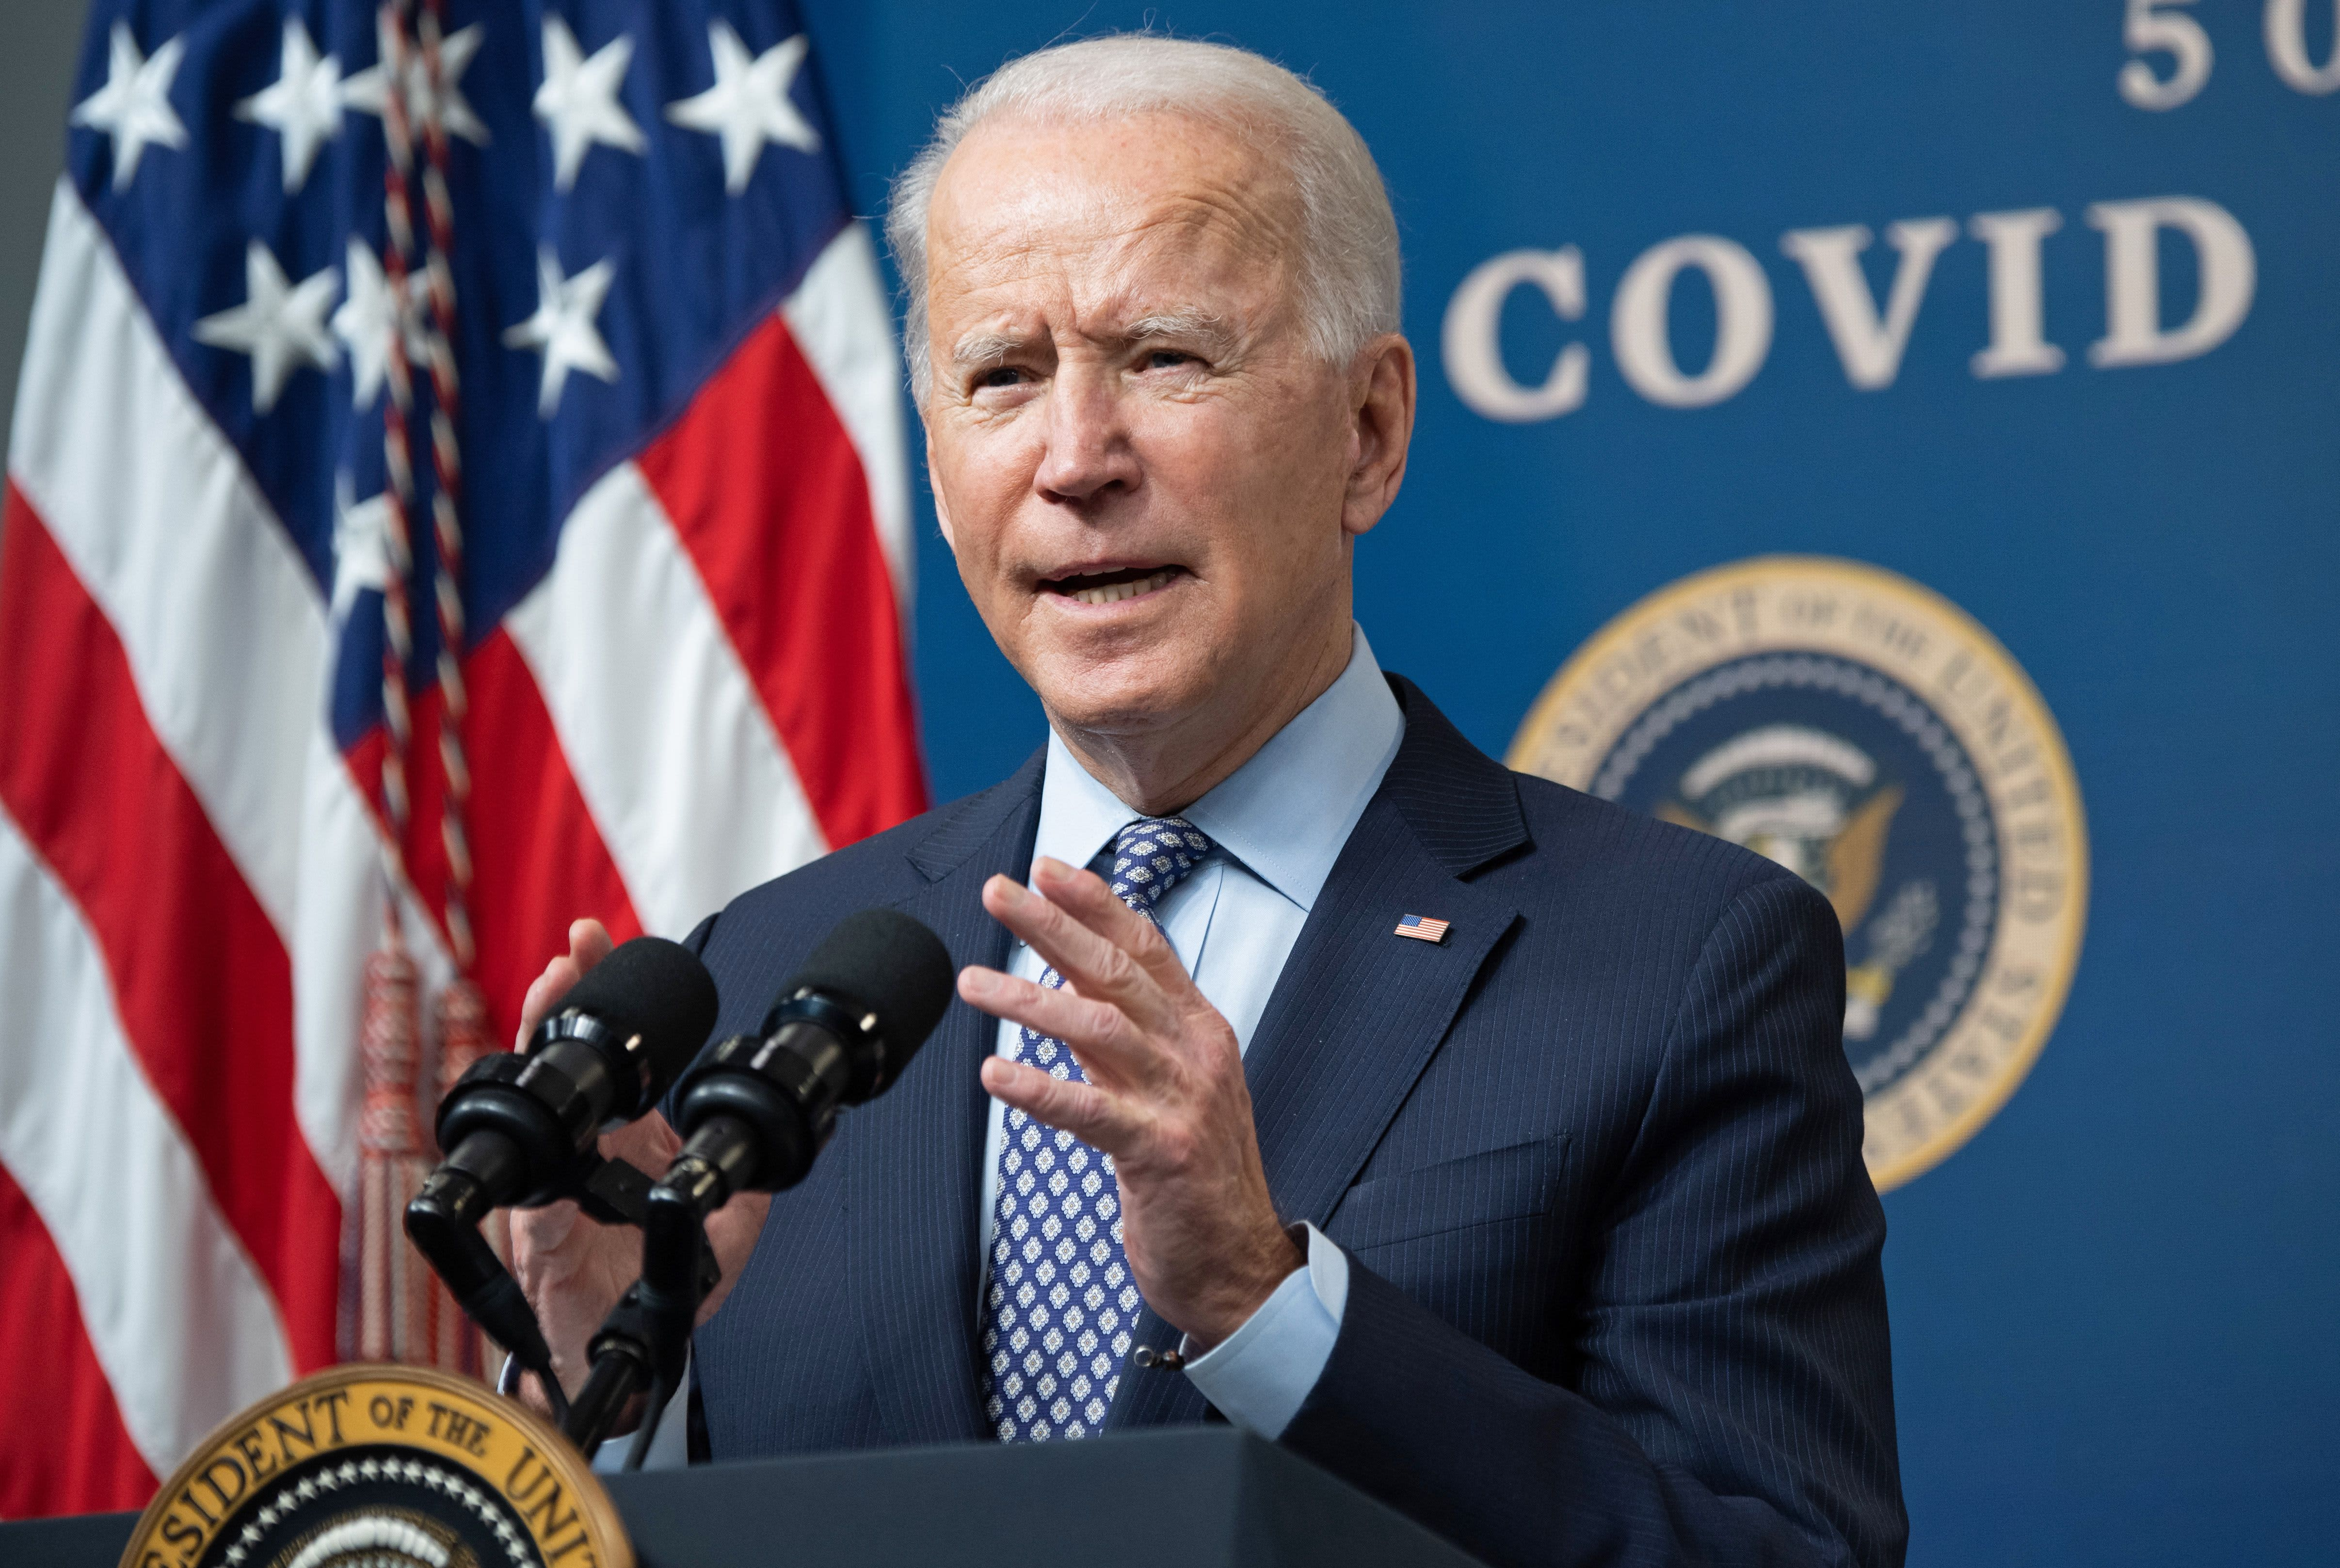 Biden administration taps private companies, business groups for help in Covid fight